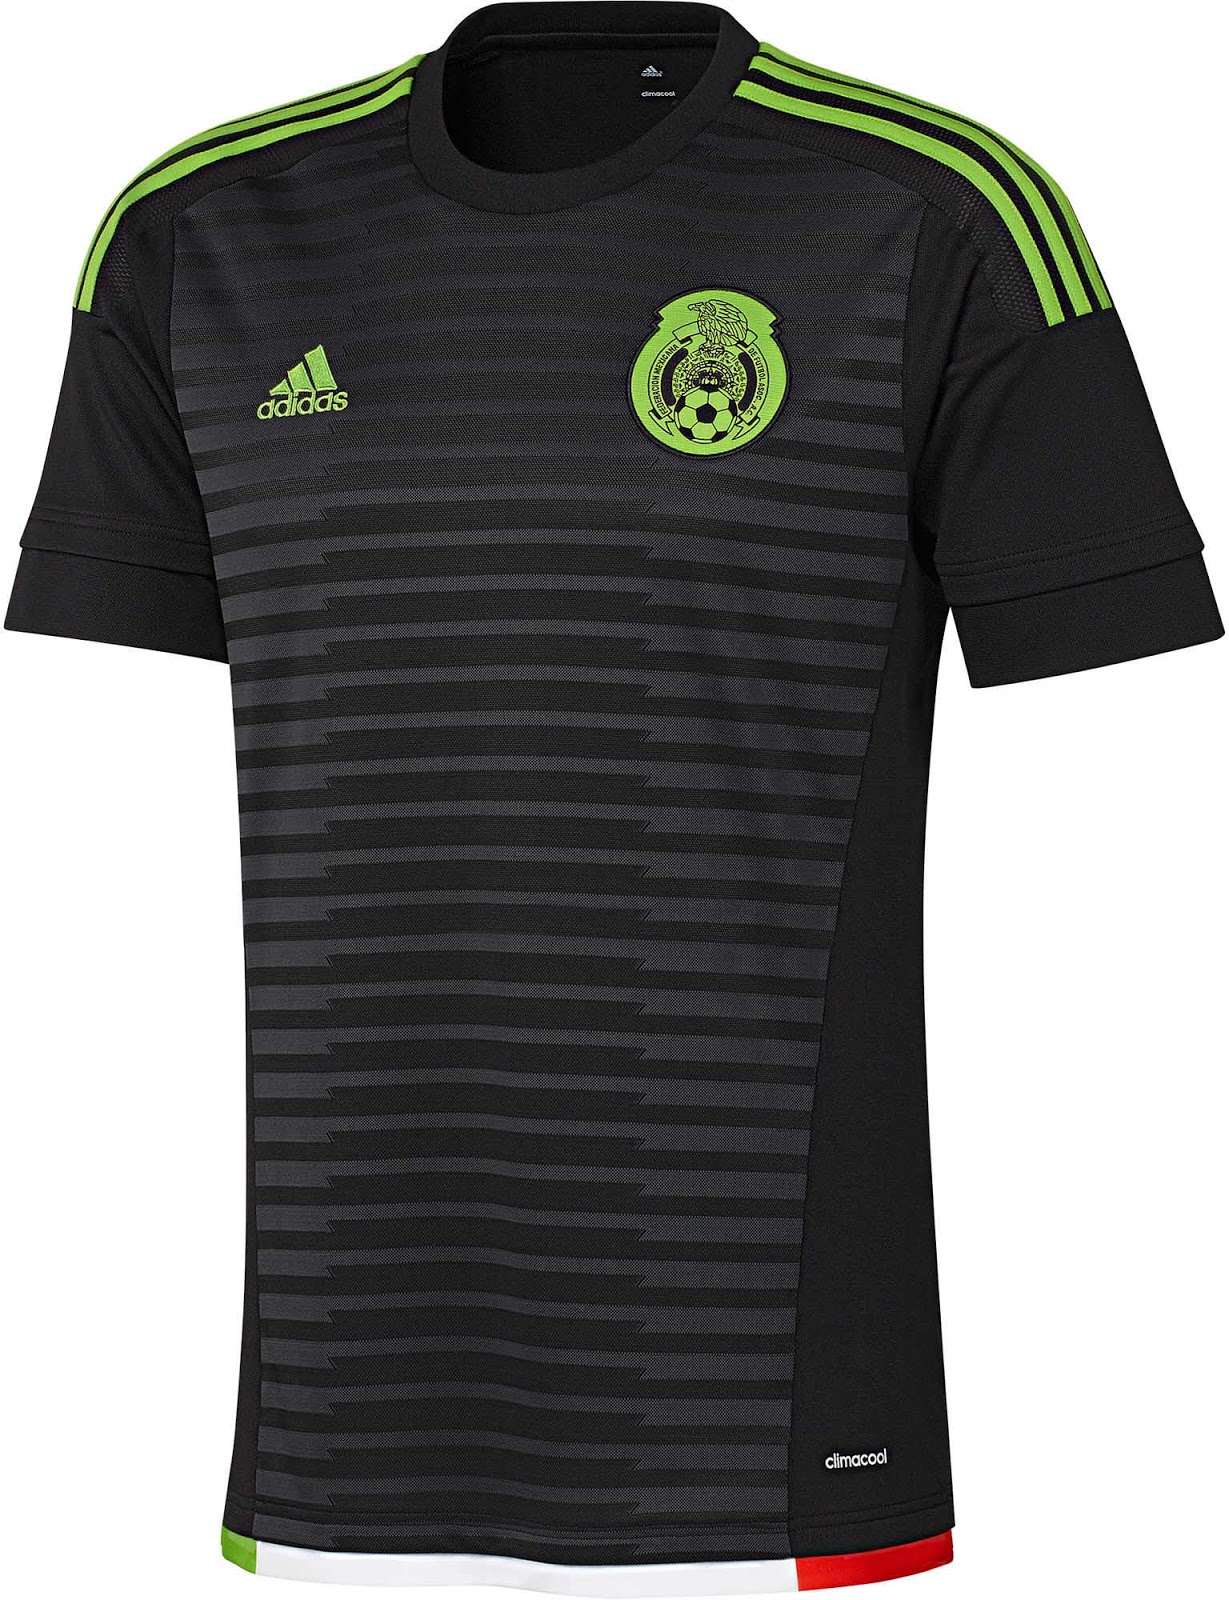 2015 Copa America Mexico Home Jersey 00d61c37ced6d